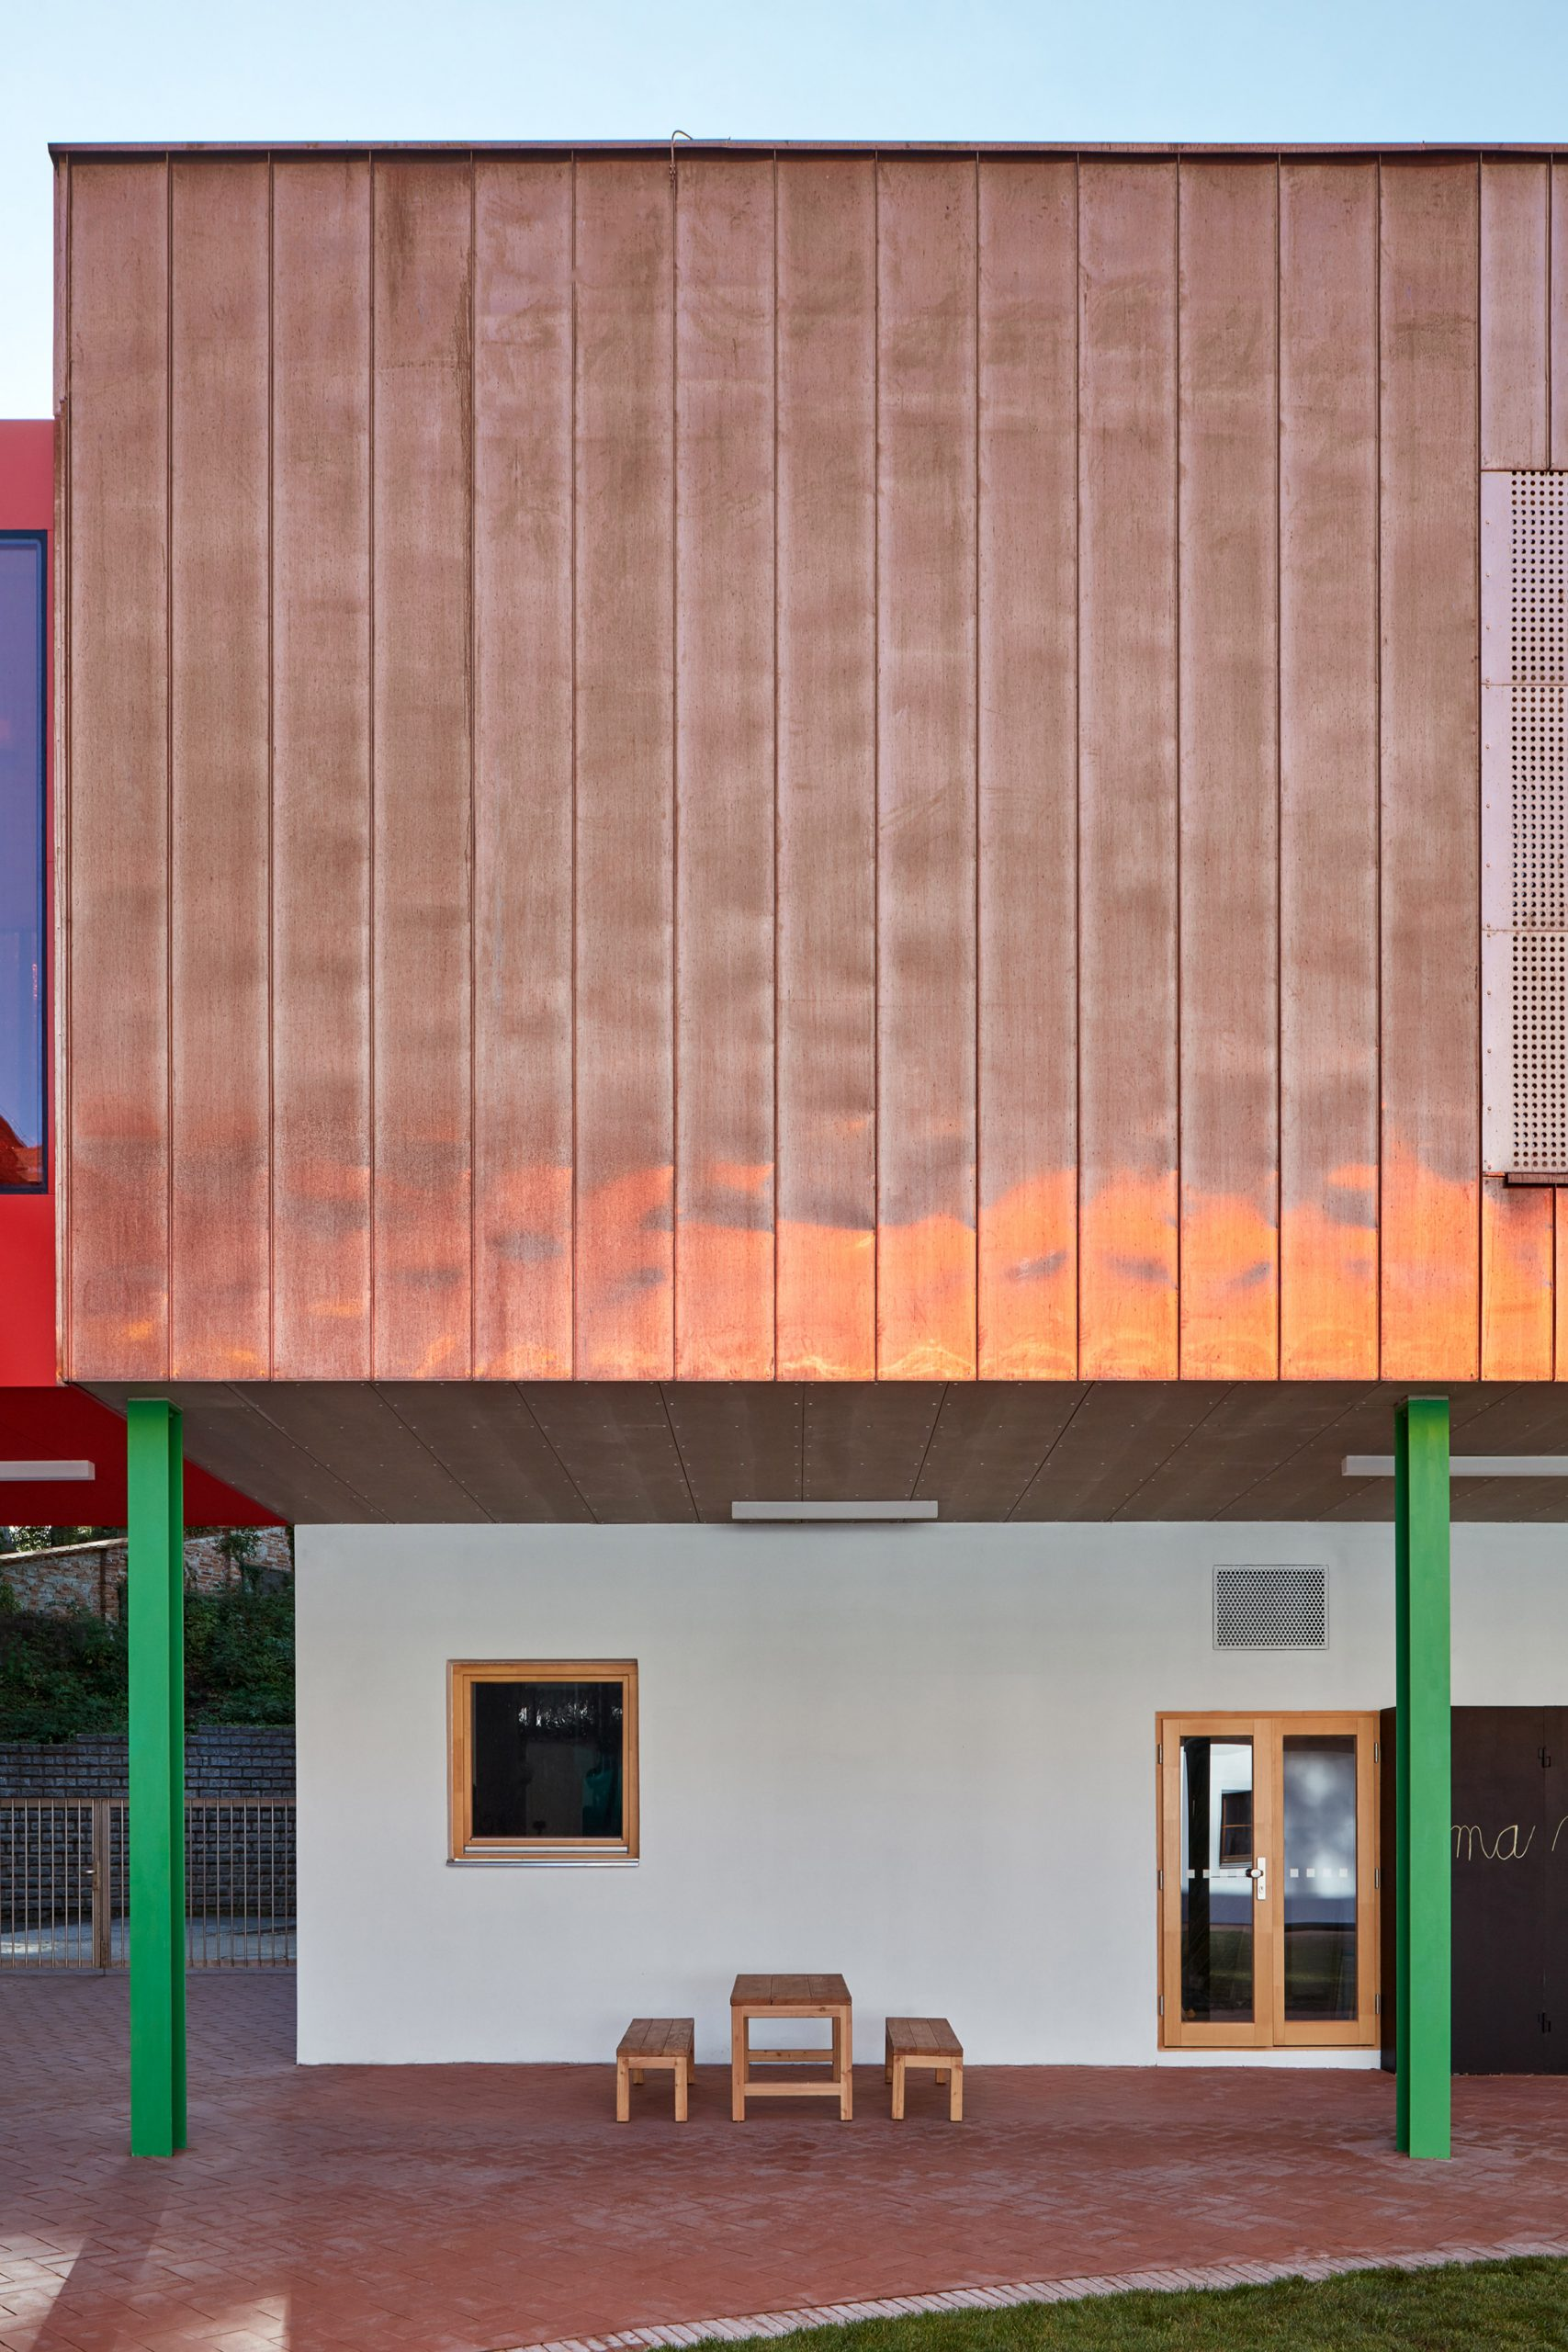 Elementary School Vřesovice by Public Atelier and FUUZE